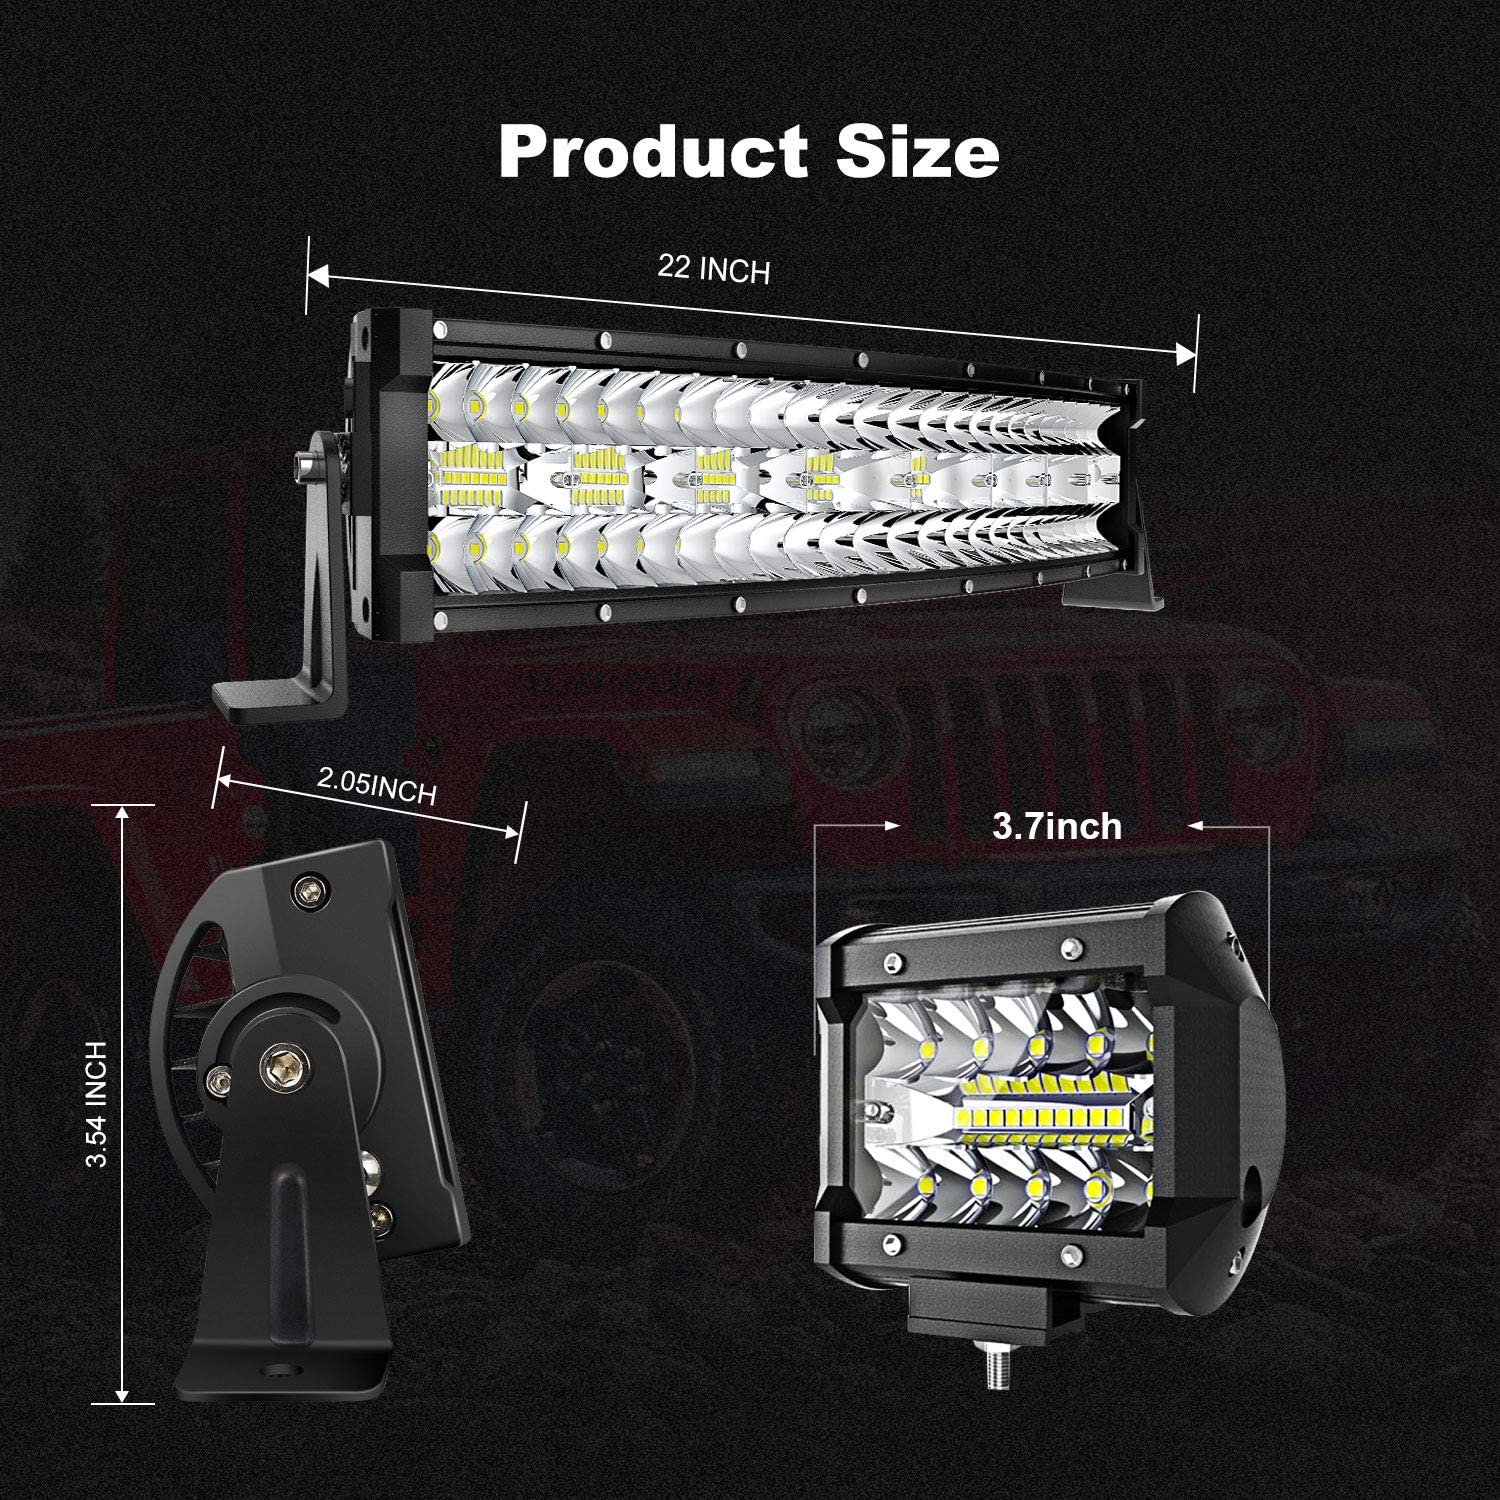 32 LED Light Bar Curved TERRAIN VISION Triple Row 585W Flood Spot Combo Beam Off Road Lights 2pc 4inch 60W Driving Fog Lights with Rocker Switch Harness Wiring for Trucks ATV UTV Jeep Boat Pickup